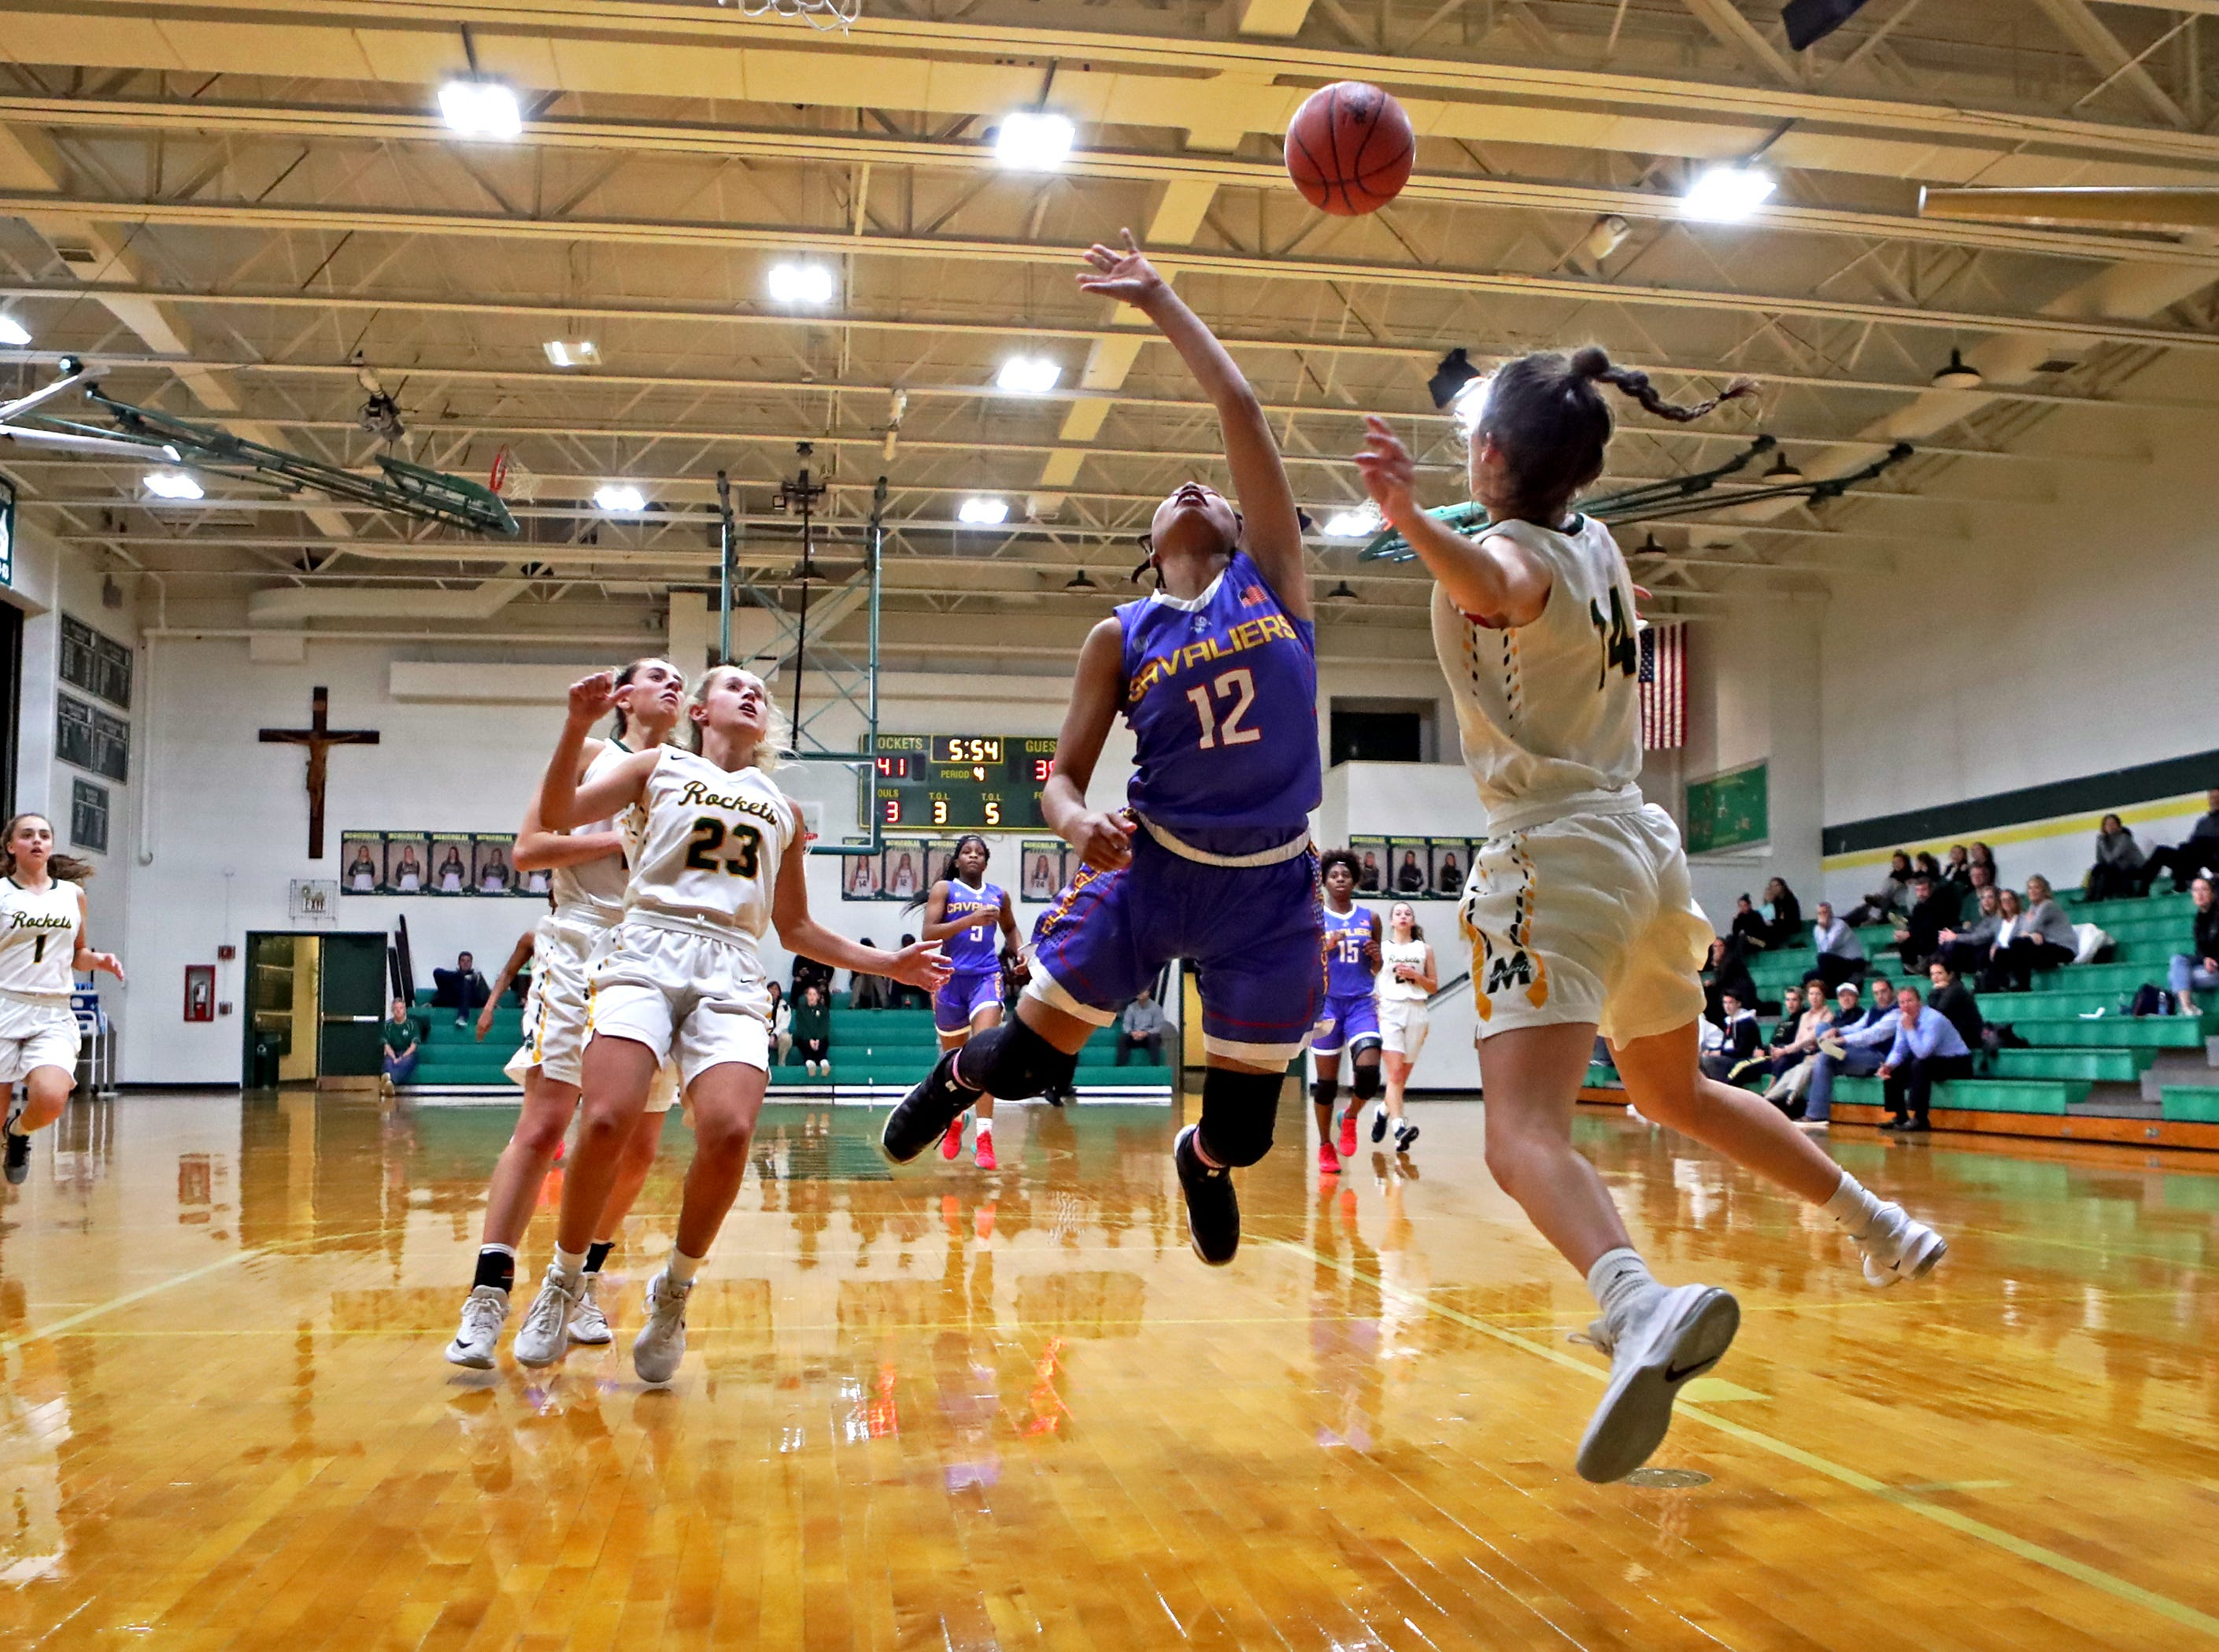 Purcell Marian guard Santia Cravens attempts to score from the lane. McNicholas upset Purcell 51-50.